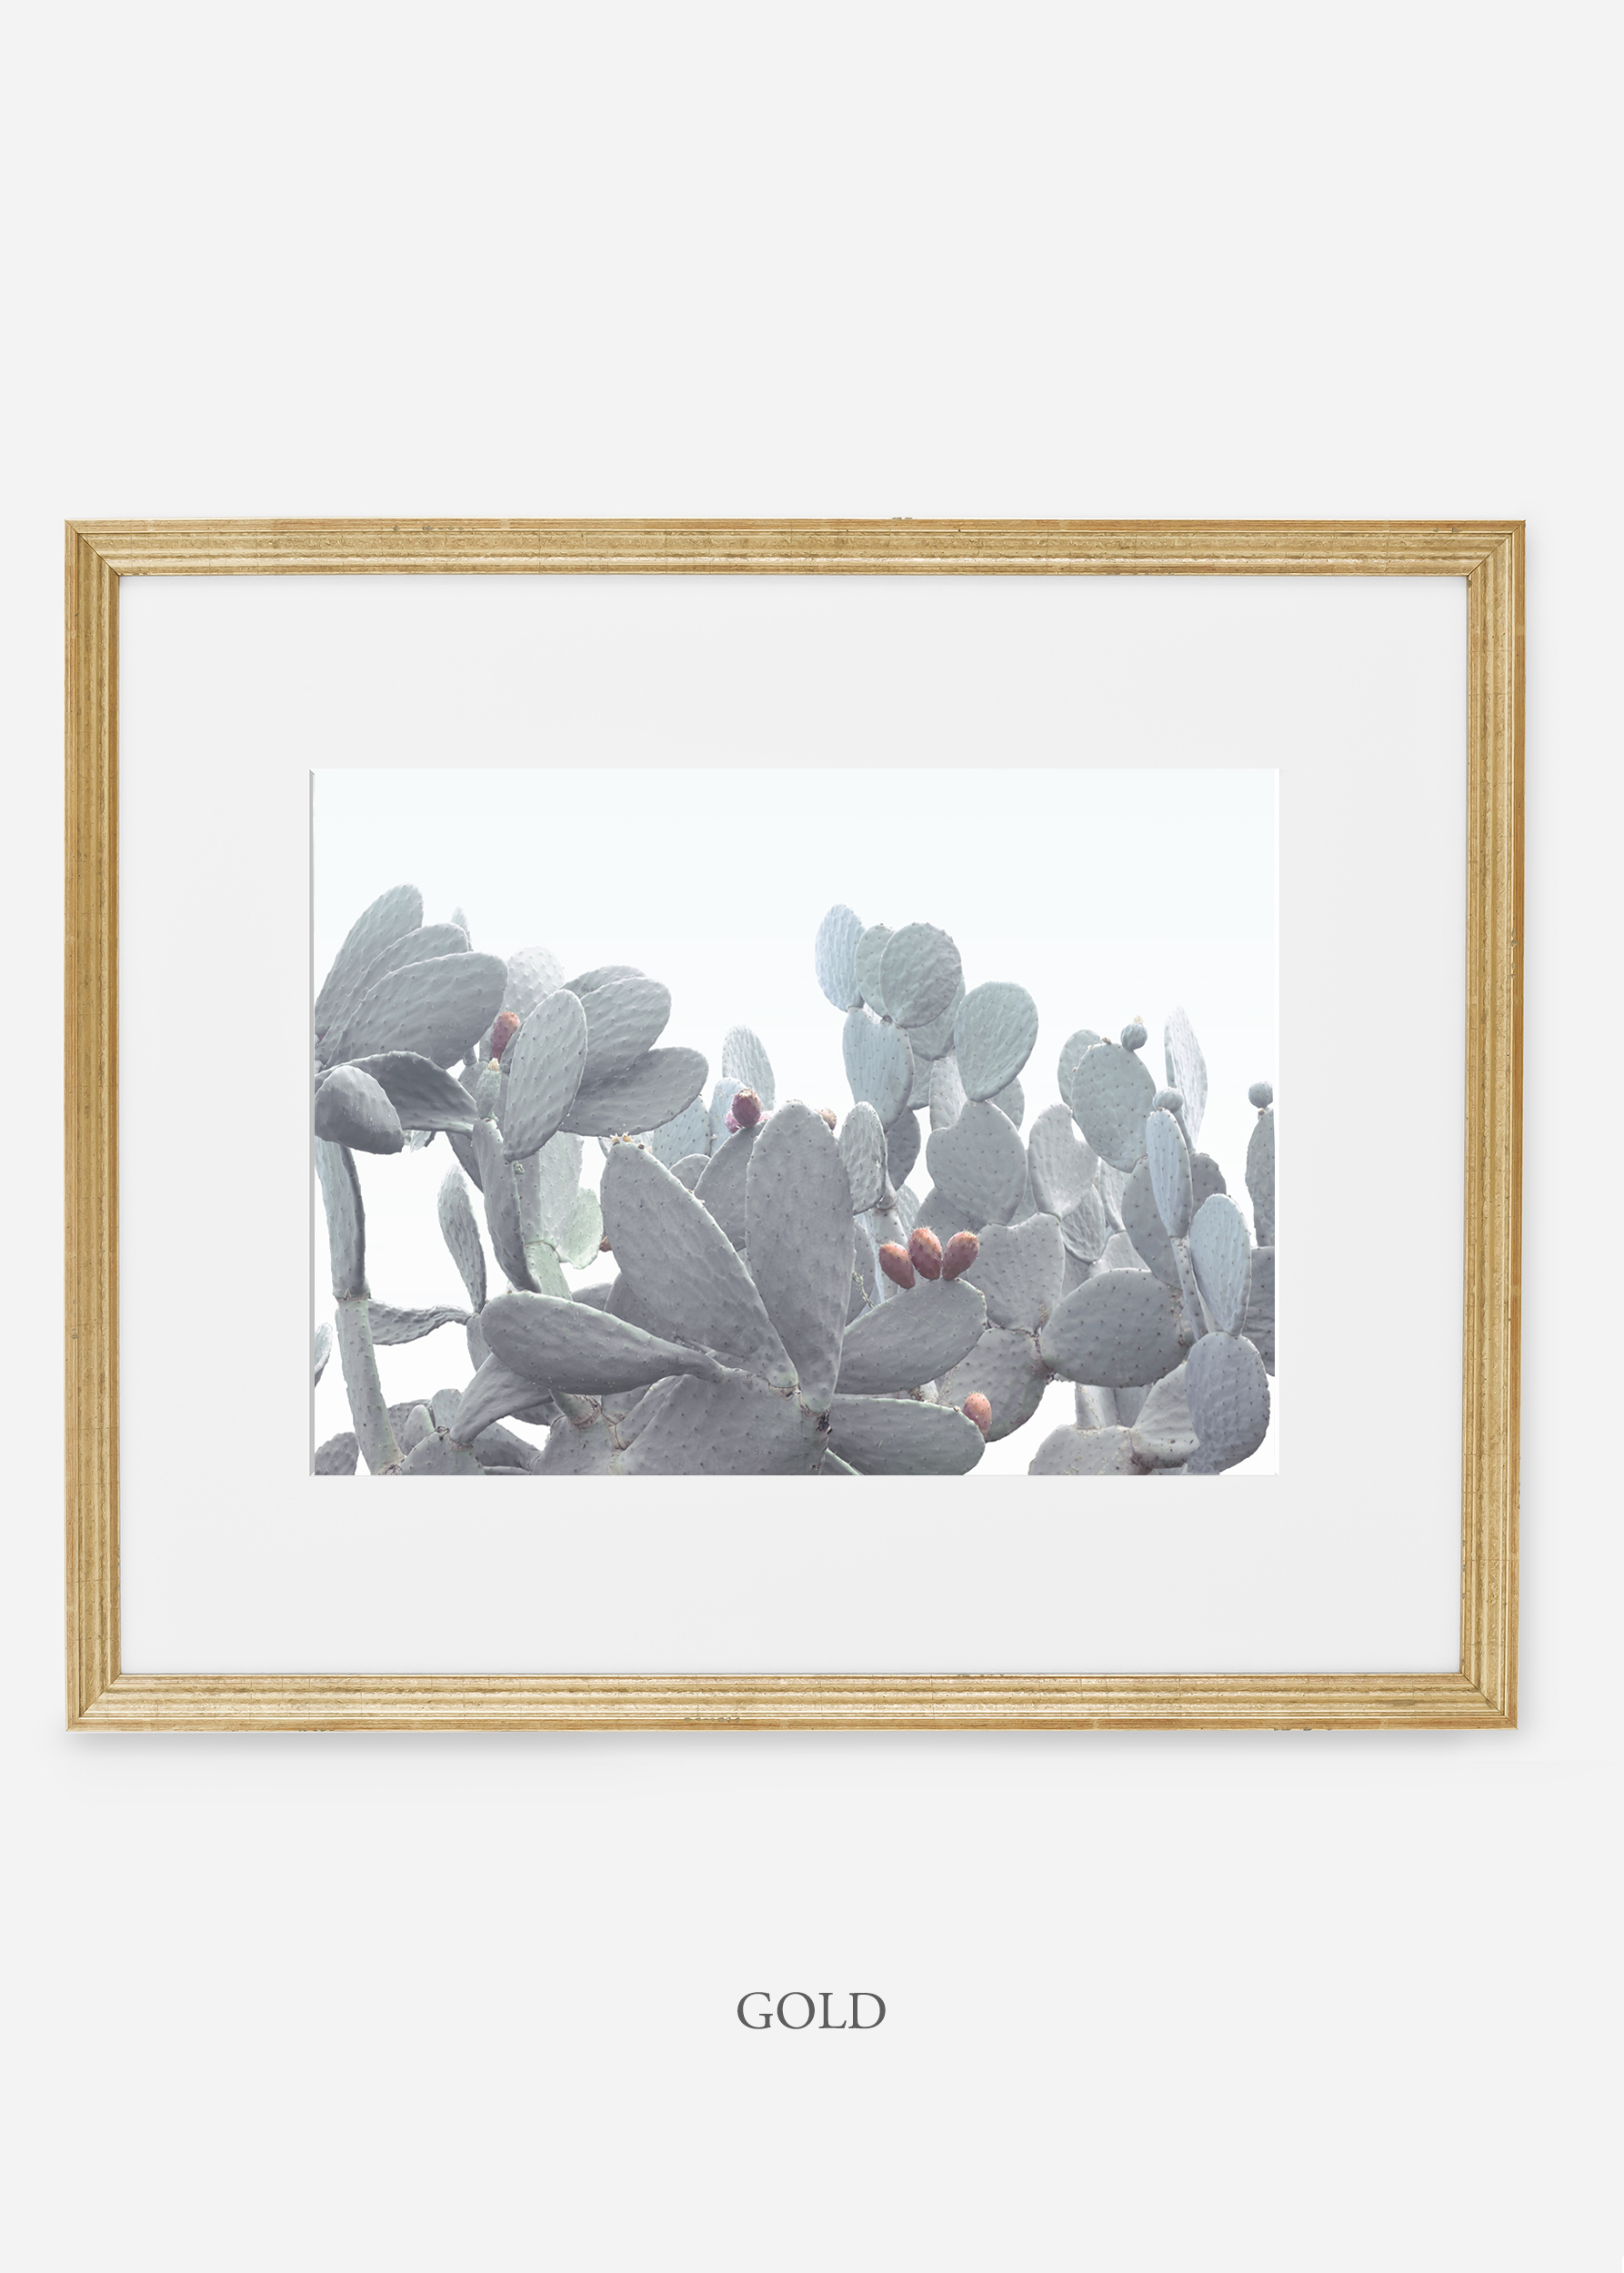 WilderCalifornia_goldframe_WinterWhite_No4_Art_Photography_interiordesign_agave.jpg